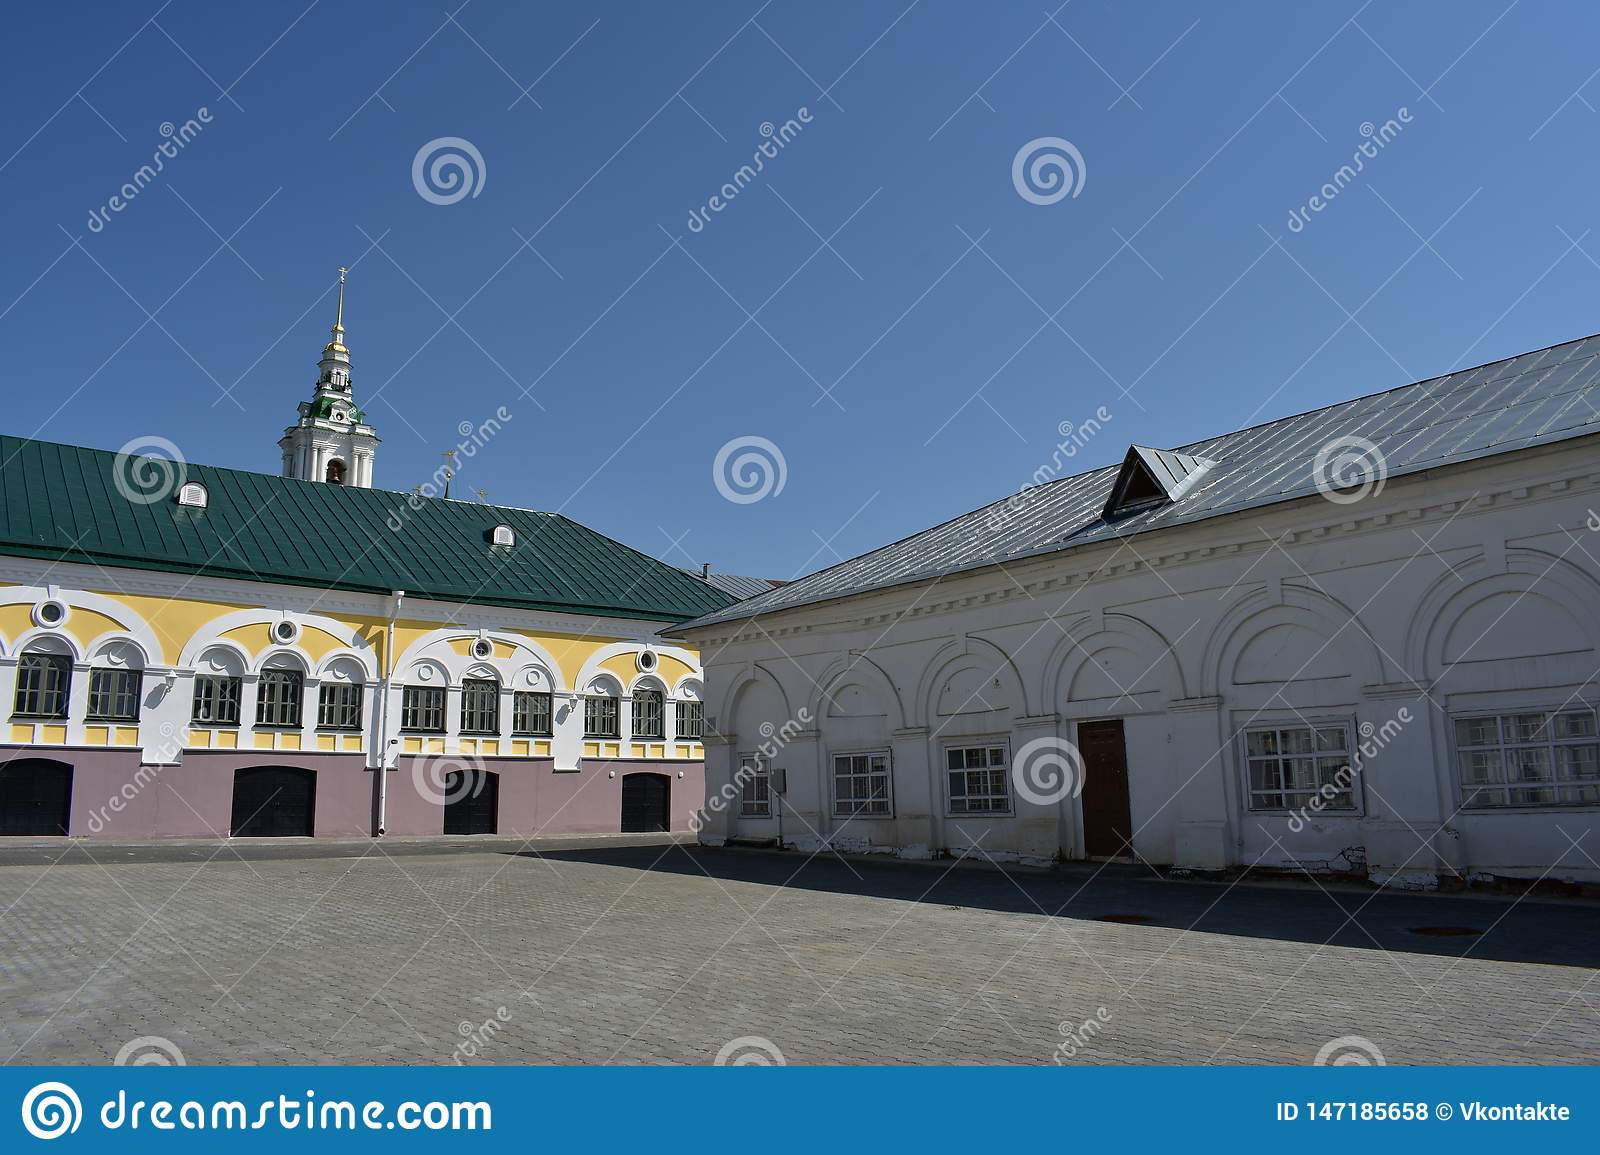 Kostroma beautiful view of the shopping arcade opens from the square, white arcade, bell tower and the dome of the Church